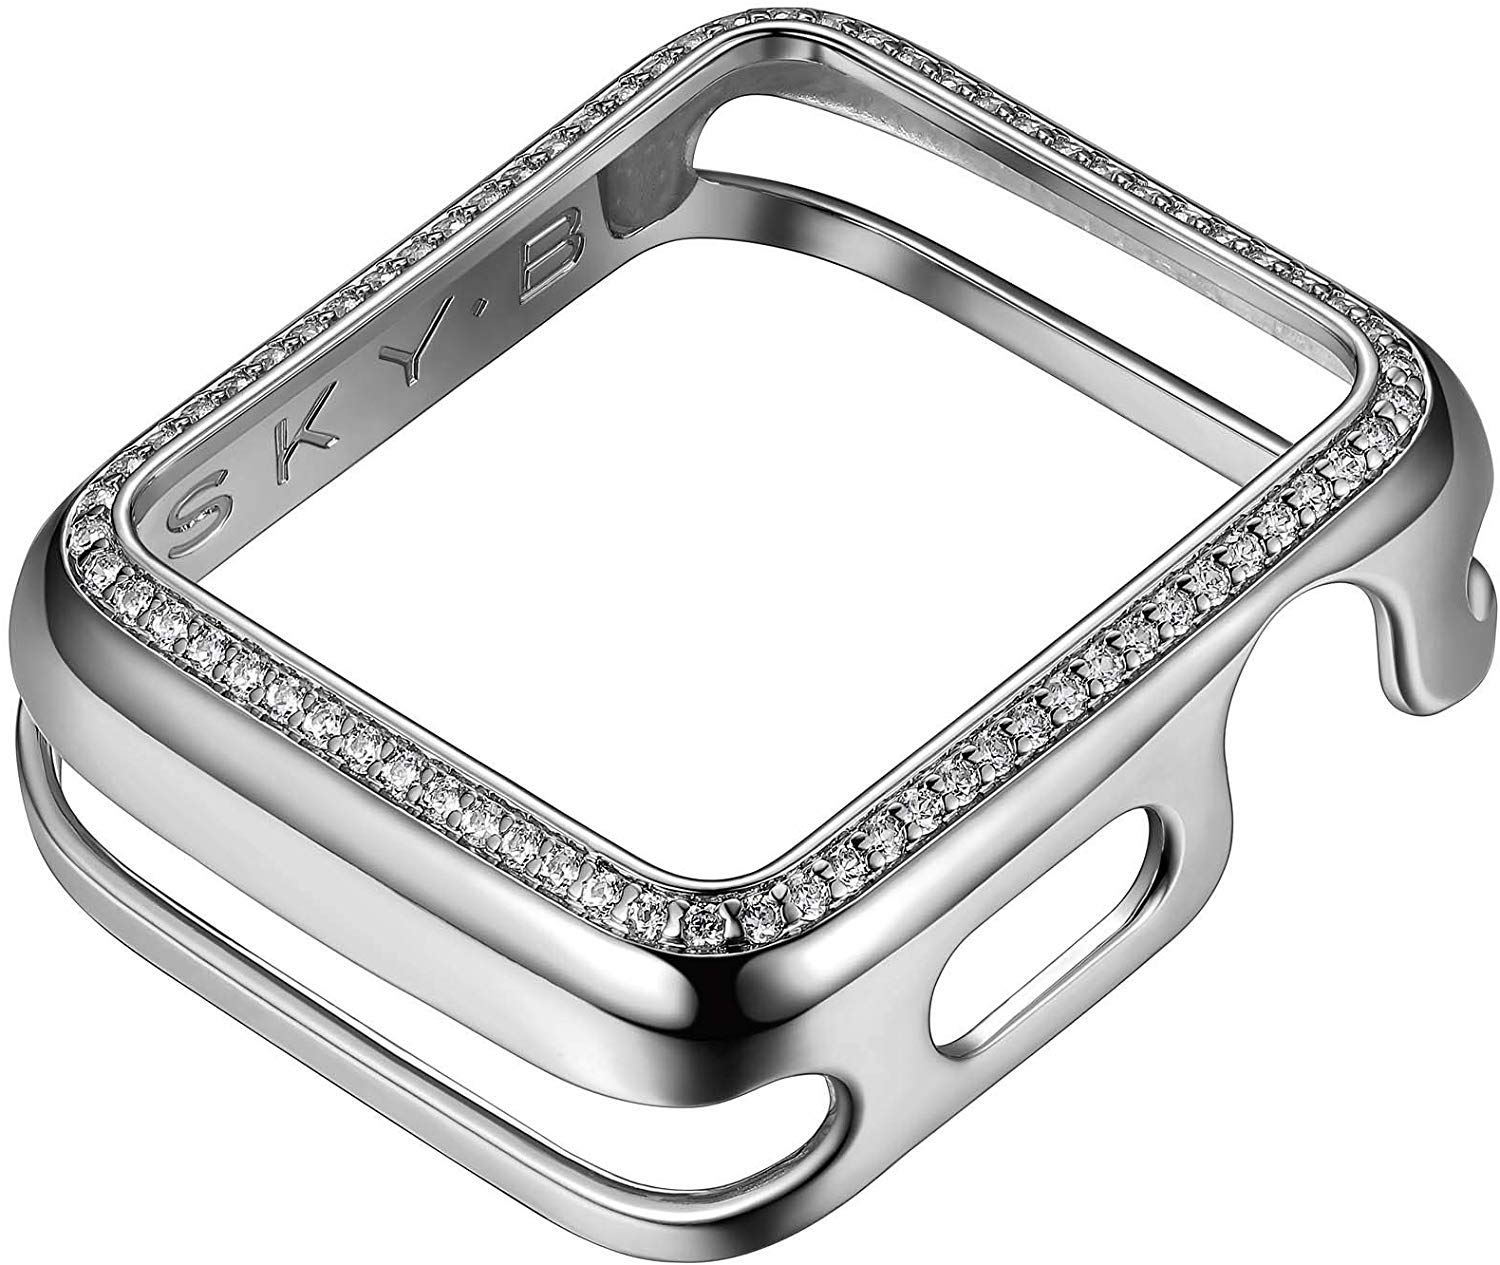 SKYB Designer Cubic Zirconia Apple Watch Cases .925 Sterling Silver & Rhodium Plated Jewelry-Style with Zirconia CZ Border - Small (Fits 38mm iWatch) by SKYB